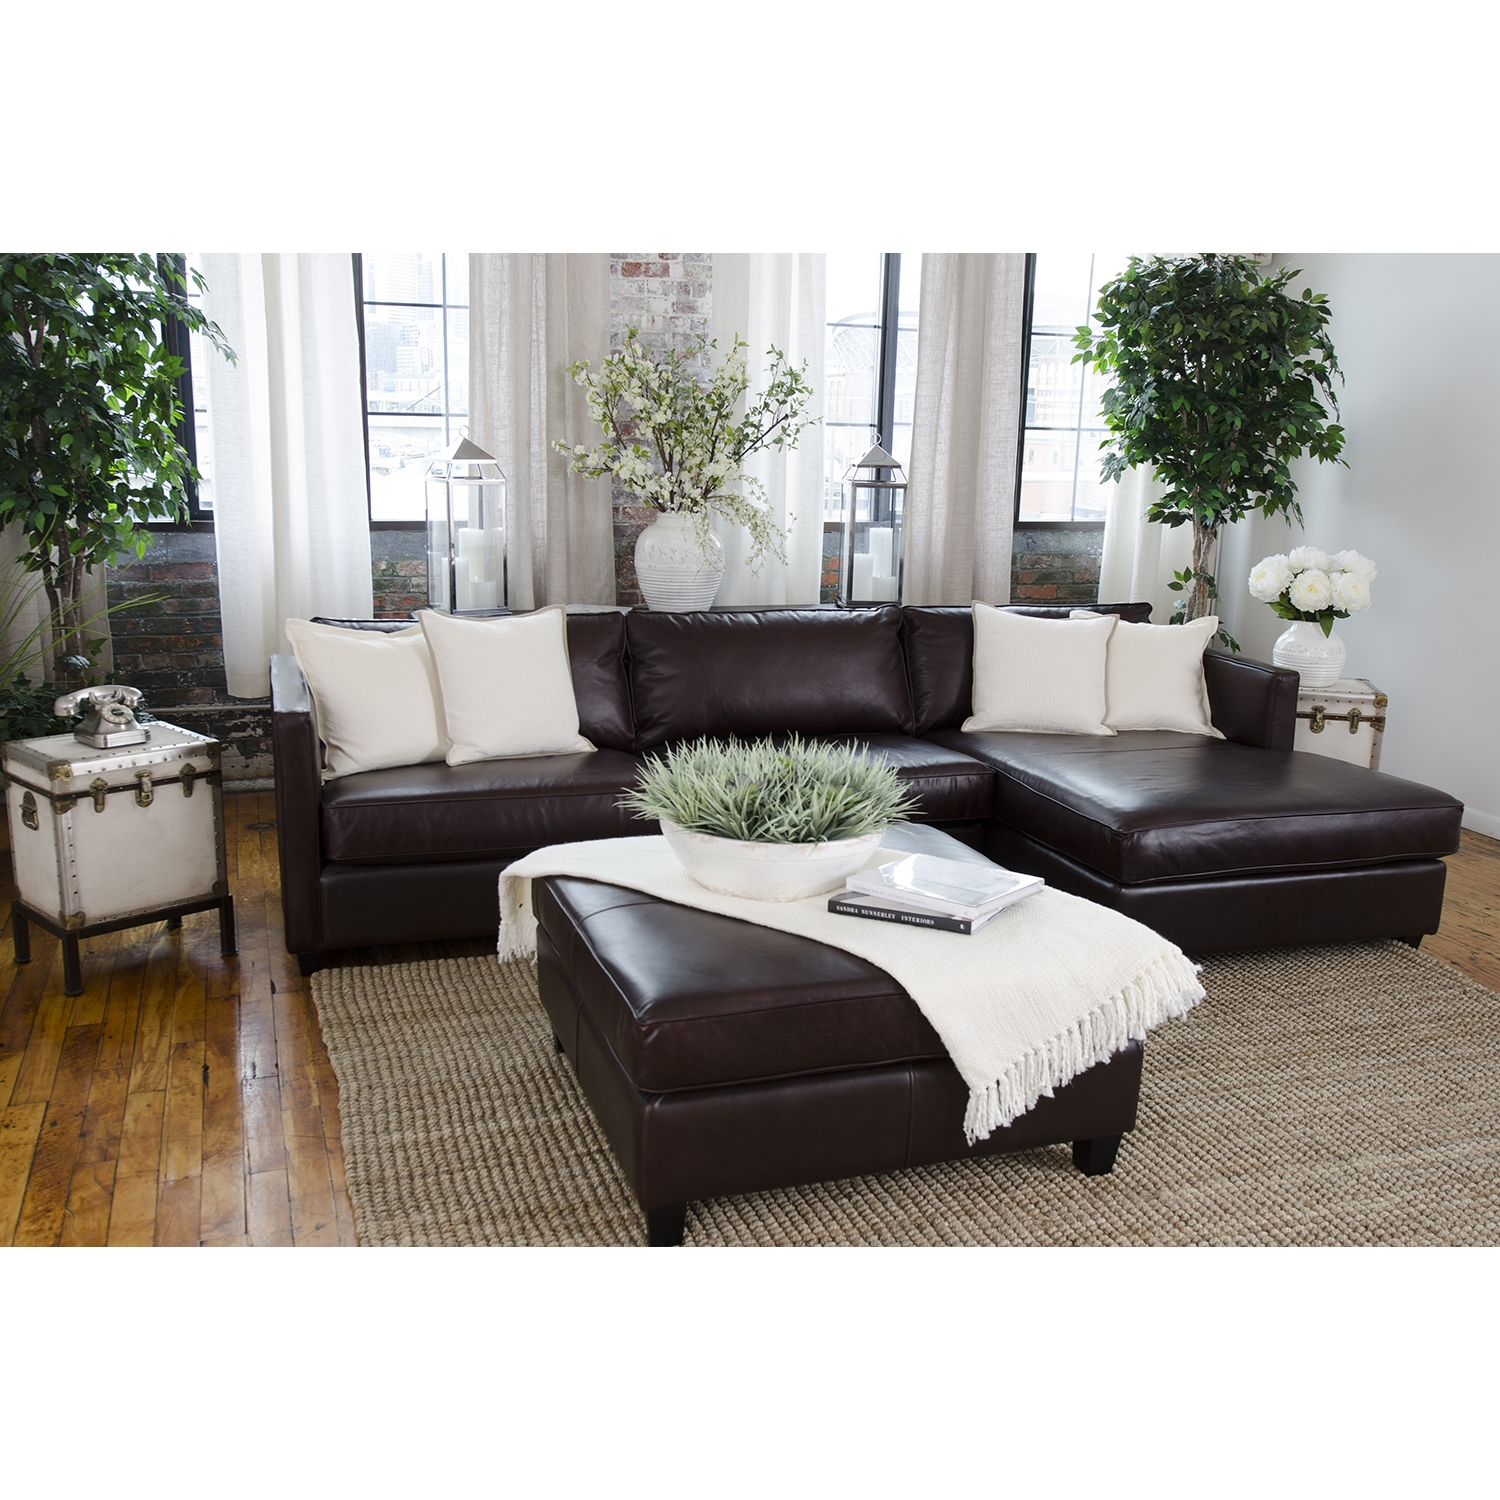 Urban 2-Piece Sectional Set - Right Arm Facing Chaise, Square Ottoman - ELE-URB-2PC-LAFL-RAFC-SCO-CAPP-1